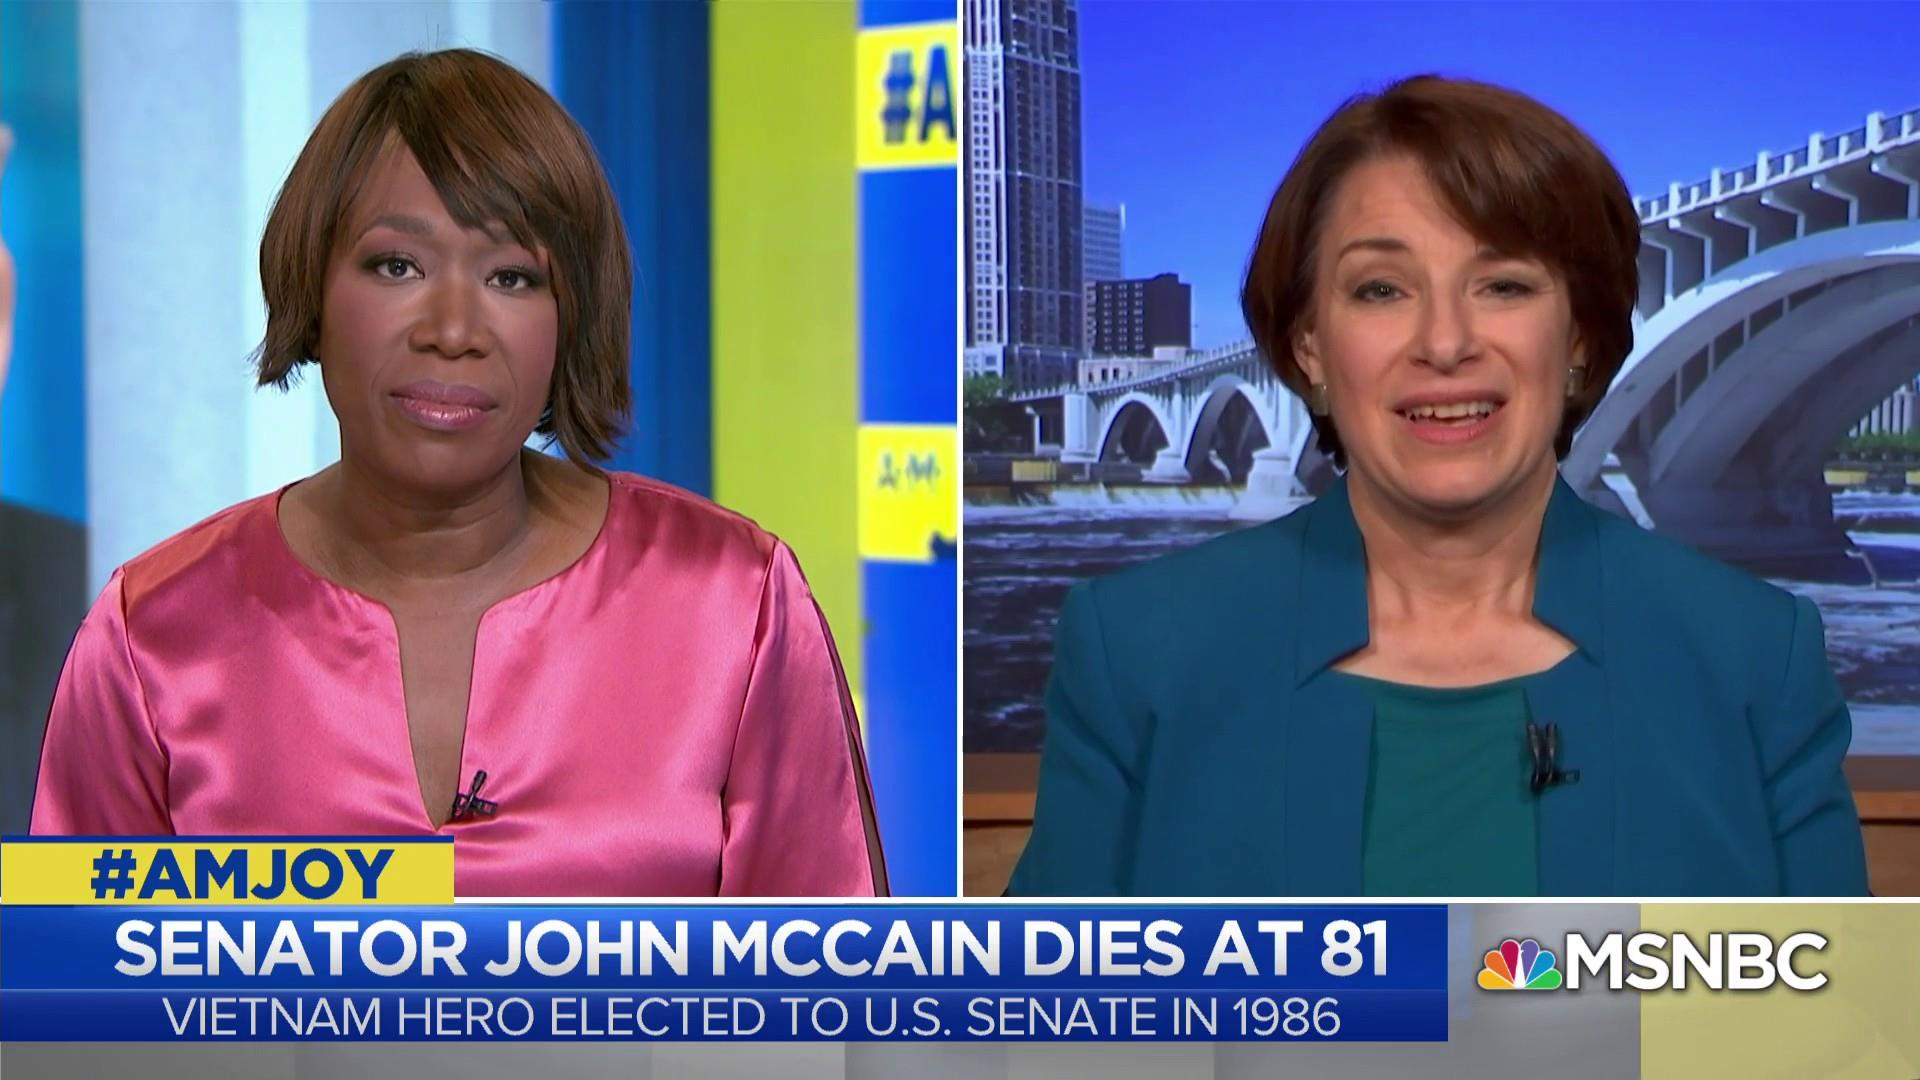 Sen. Klobuchar: McCain will be missed in Senate as check on executive power